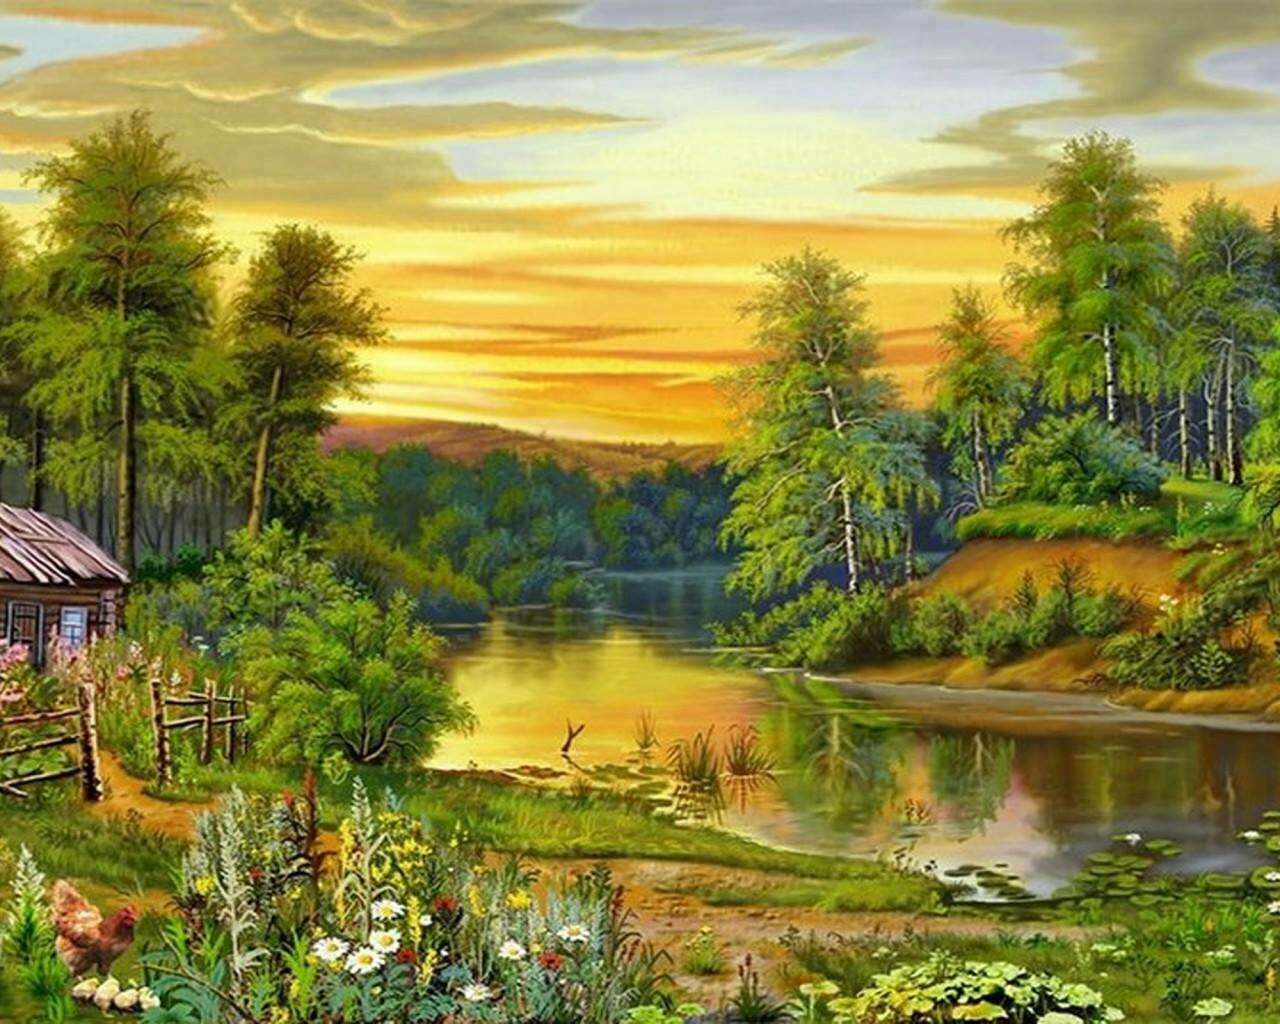 Artwork Scenery 06 - Full Drill Diamond Painting - Specially ordered for you. Delivery is approximately 4 - 6 weeks.